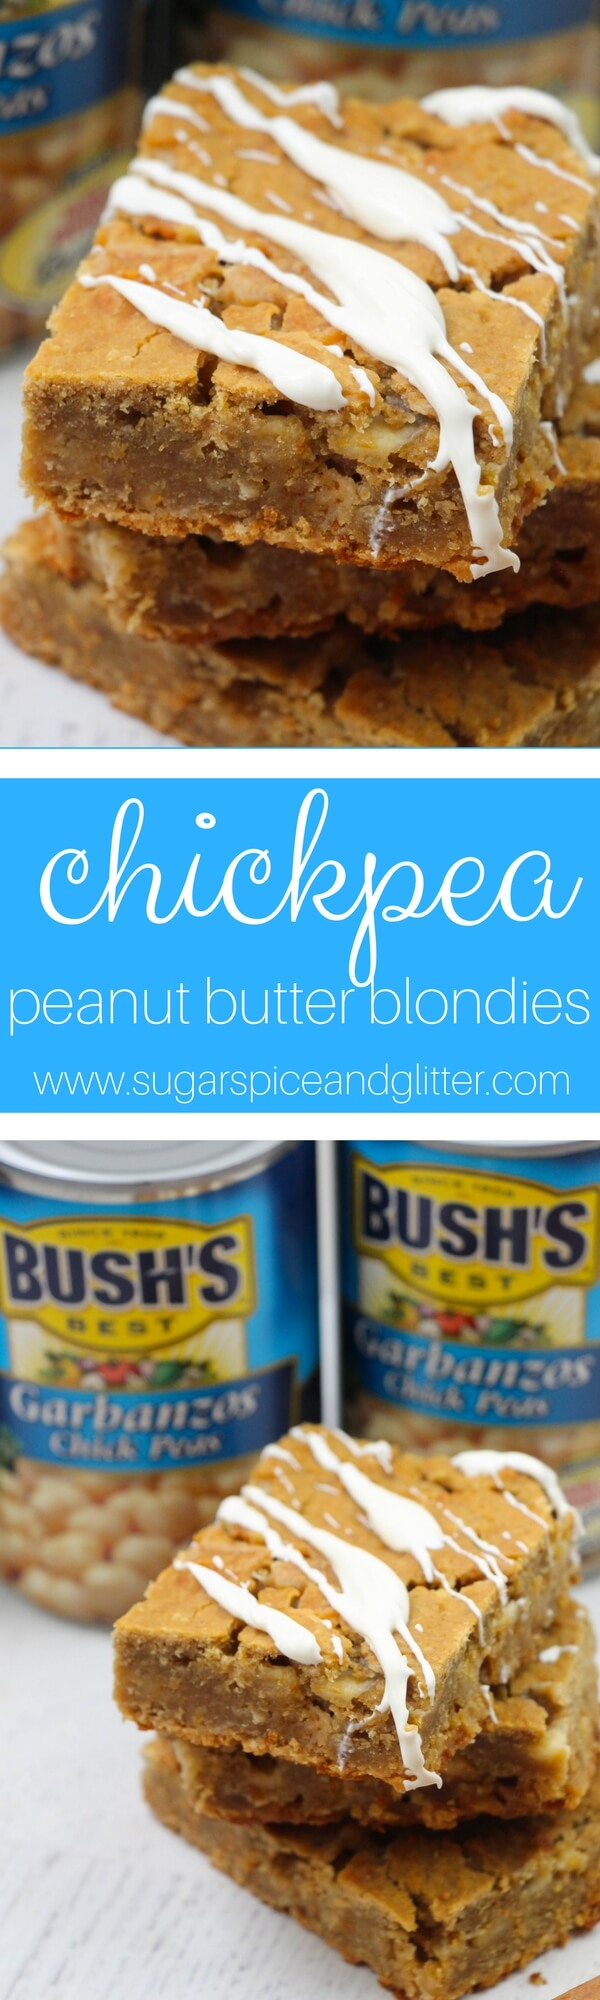 These chickpea peanut butter blondies are so decadent, you won't believe they are healthy for you!